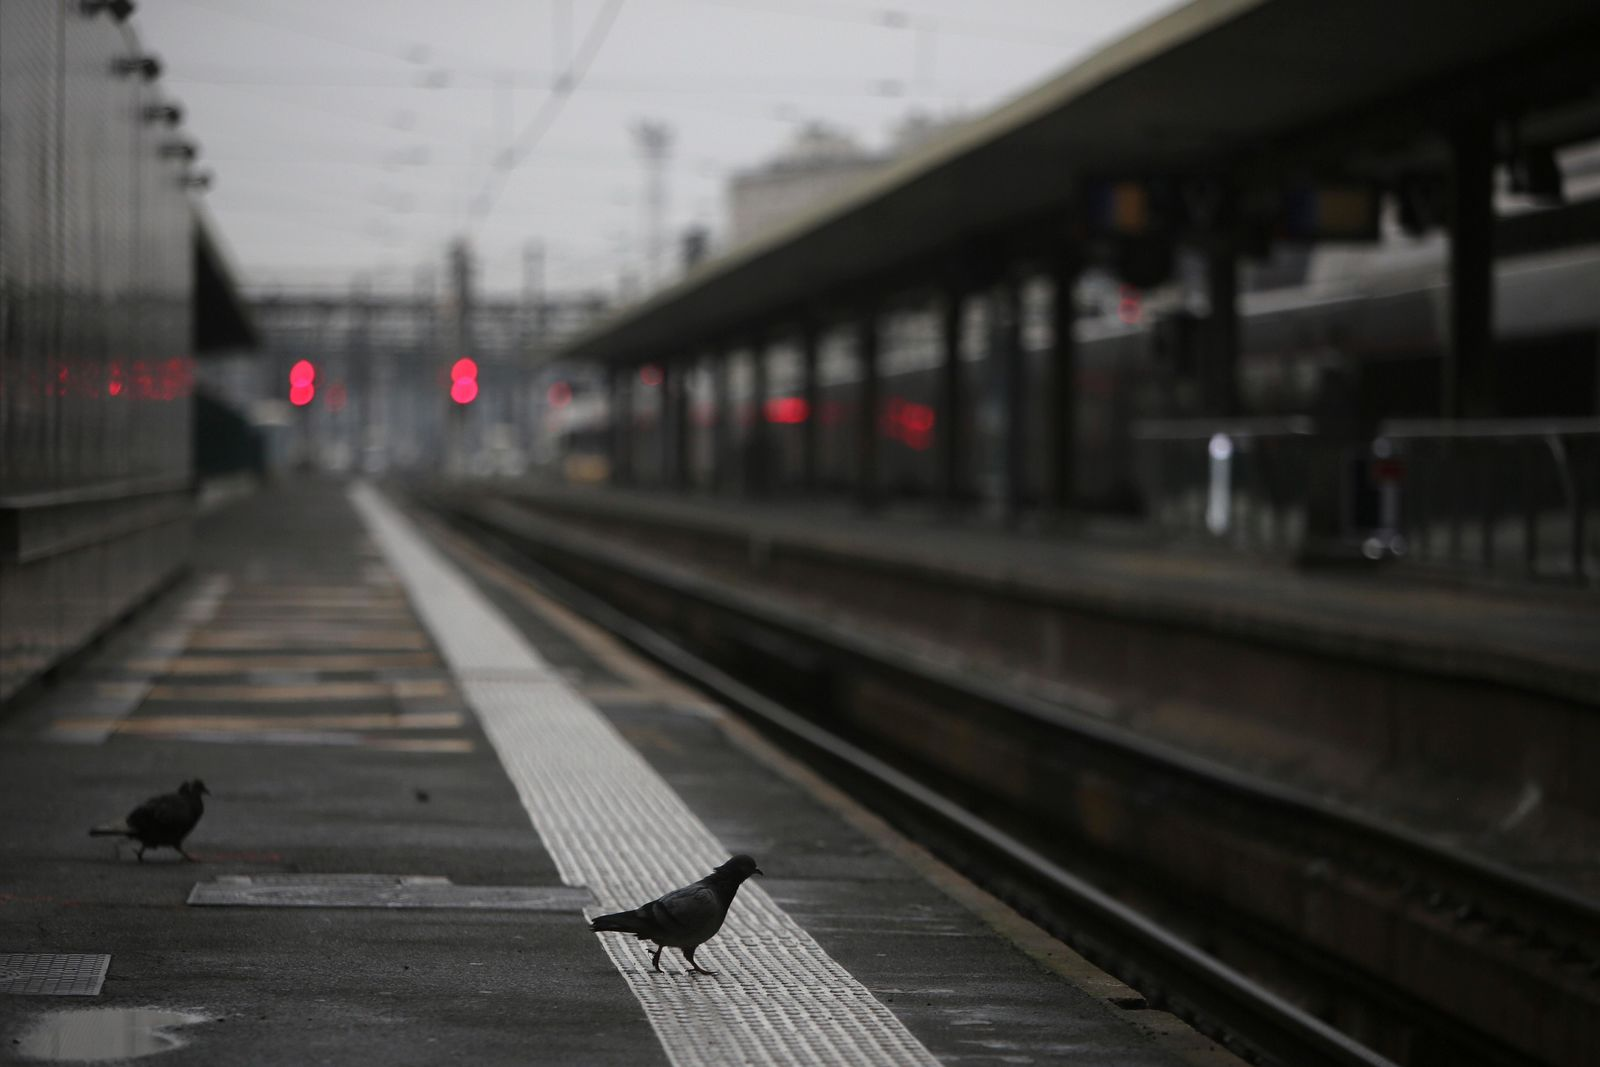 A pigeon perches on a platform at the Gare de Lyon train station, Friday, Dec. 6, 2019 in Paris.{ } (AP Photo/Rafael Yaghobzadeh)